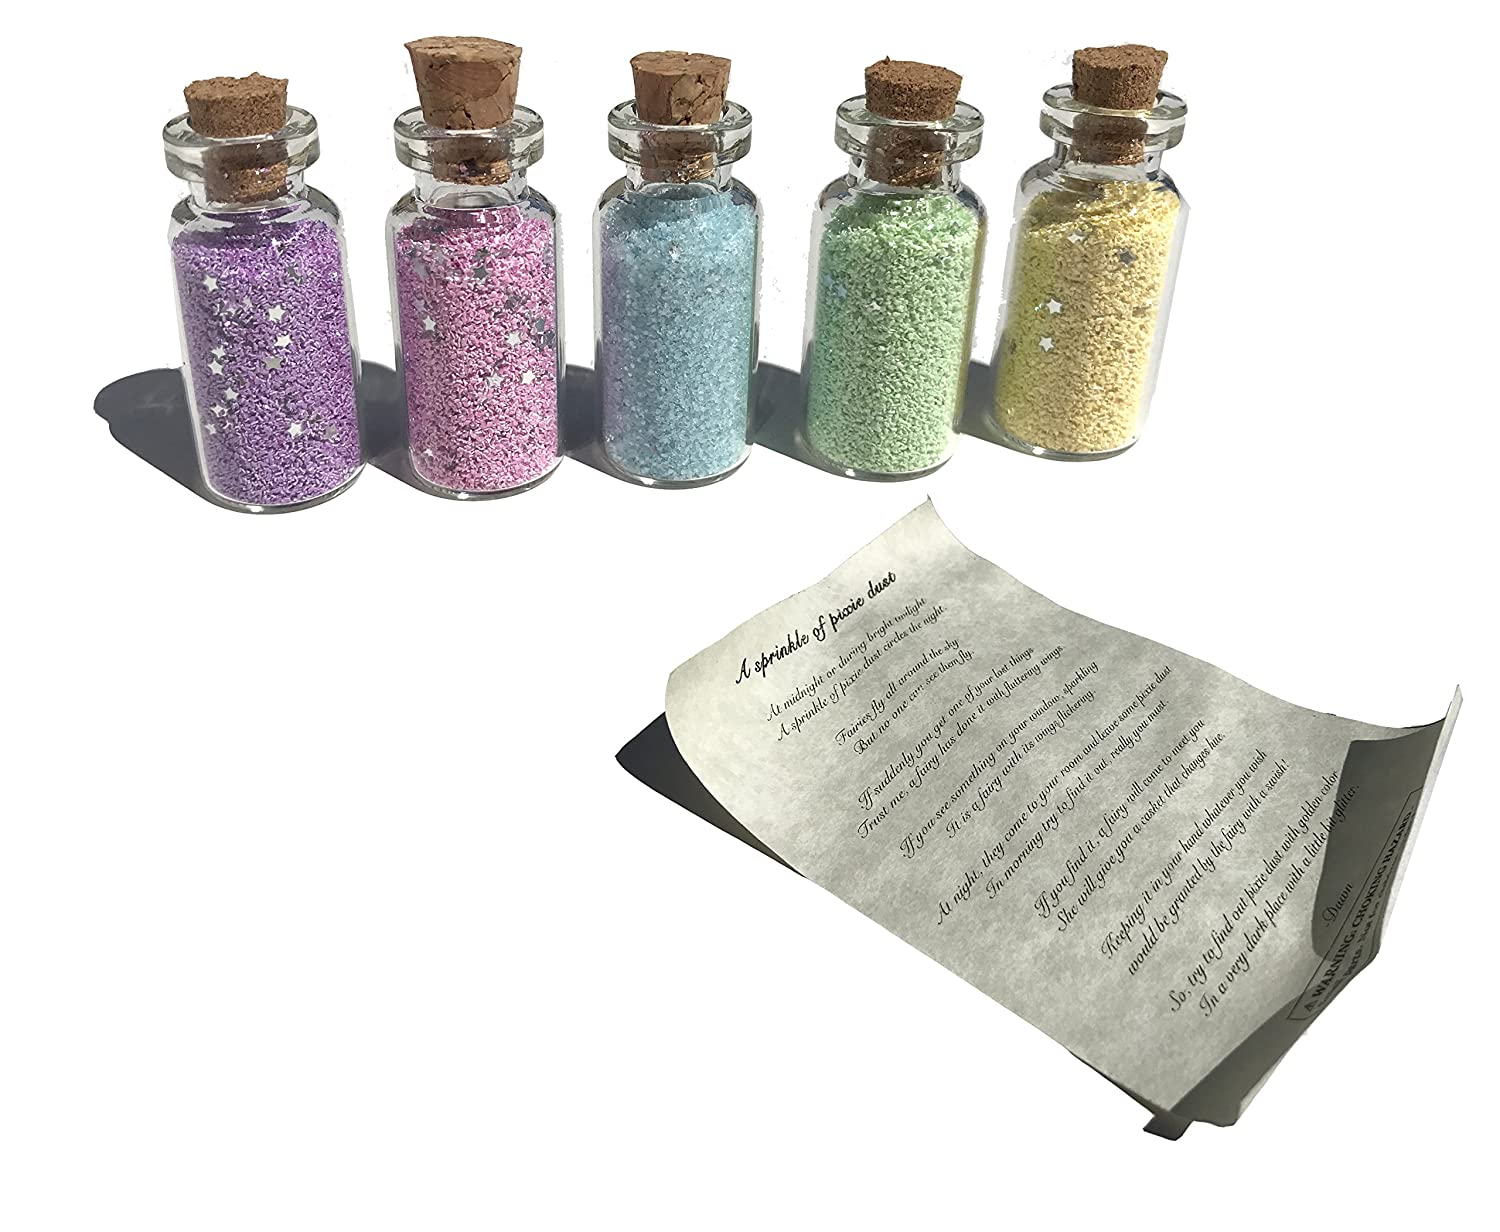 Multipack of 5 Tiny Vials of Fairy Pixie Dust Cute Colors (Glitter with Stars) Golden Leaf